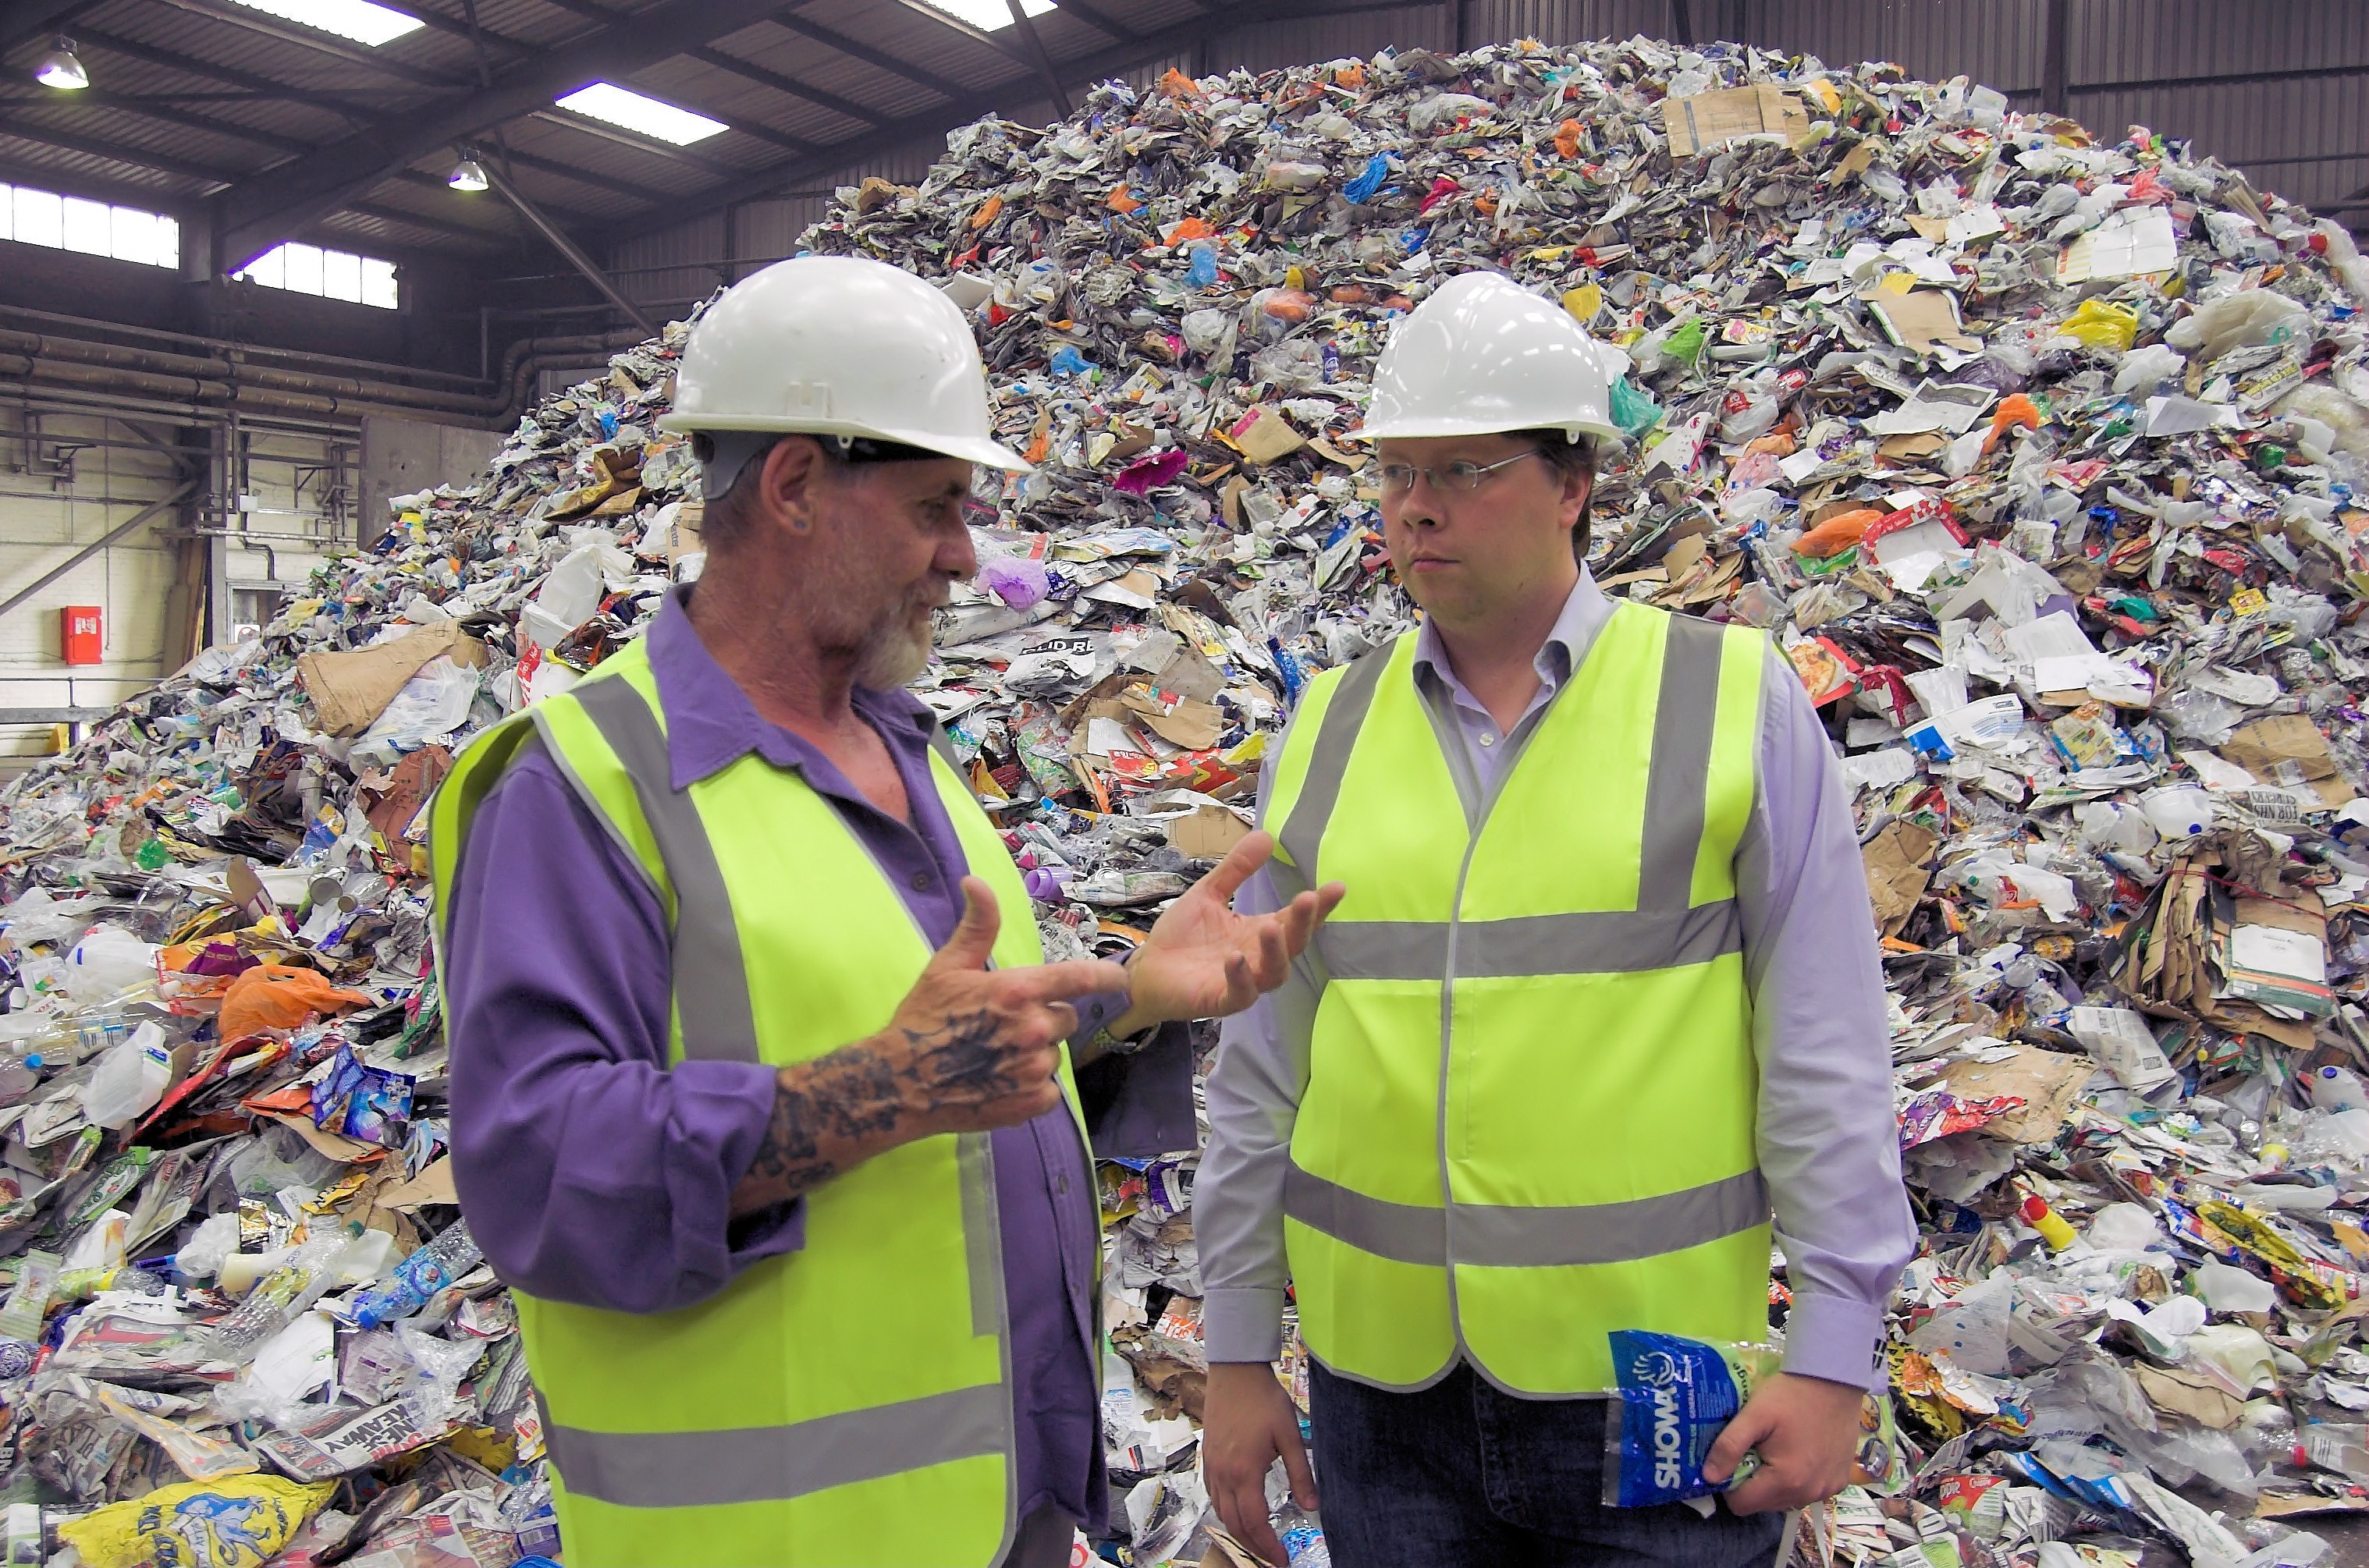 Dan_Rogerson_MP_(right)_wants_to_improve_recycling_rates_and_see_an_end_to_landfill.jpg